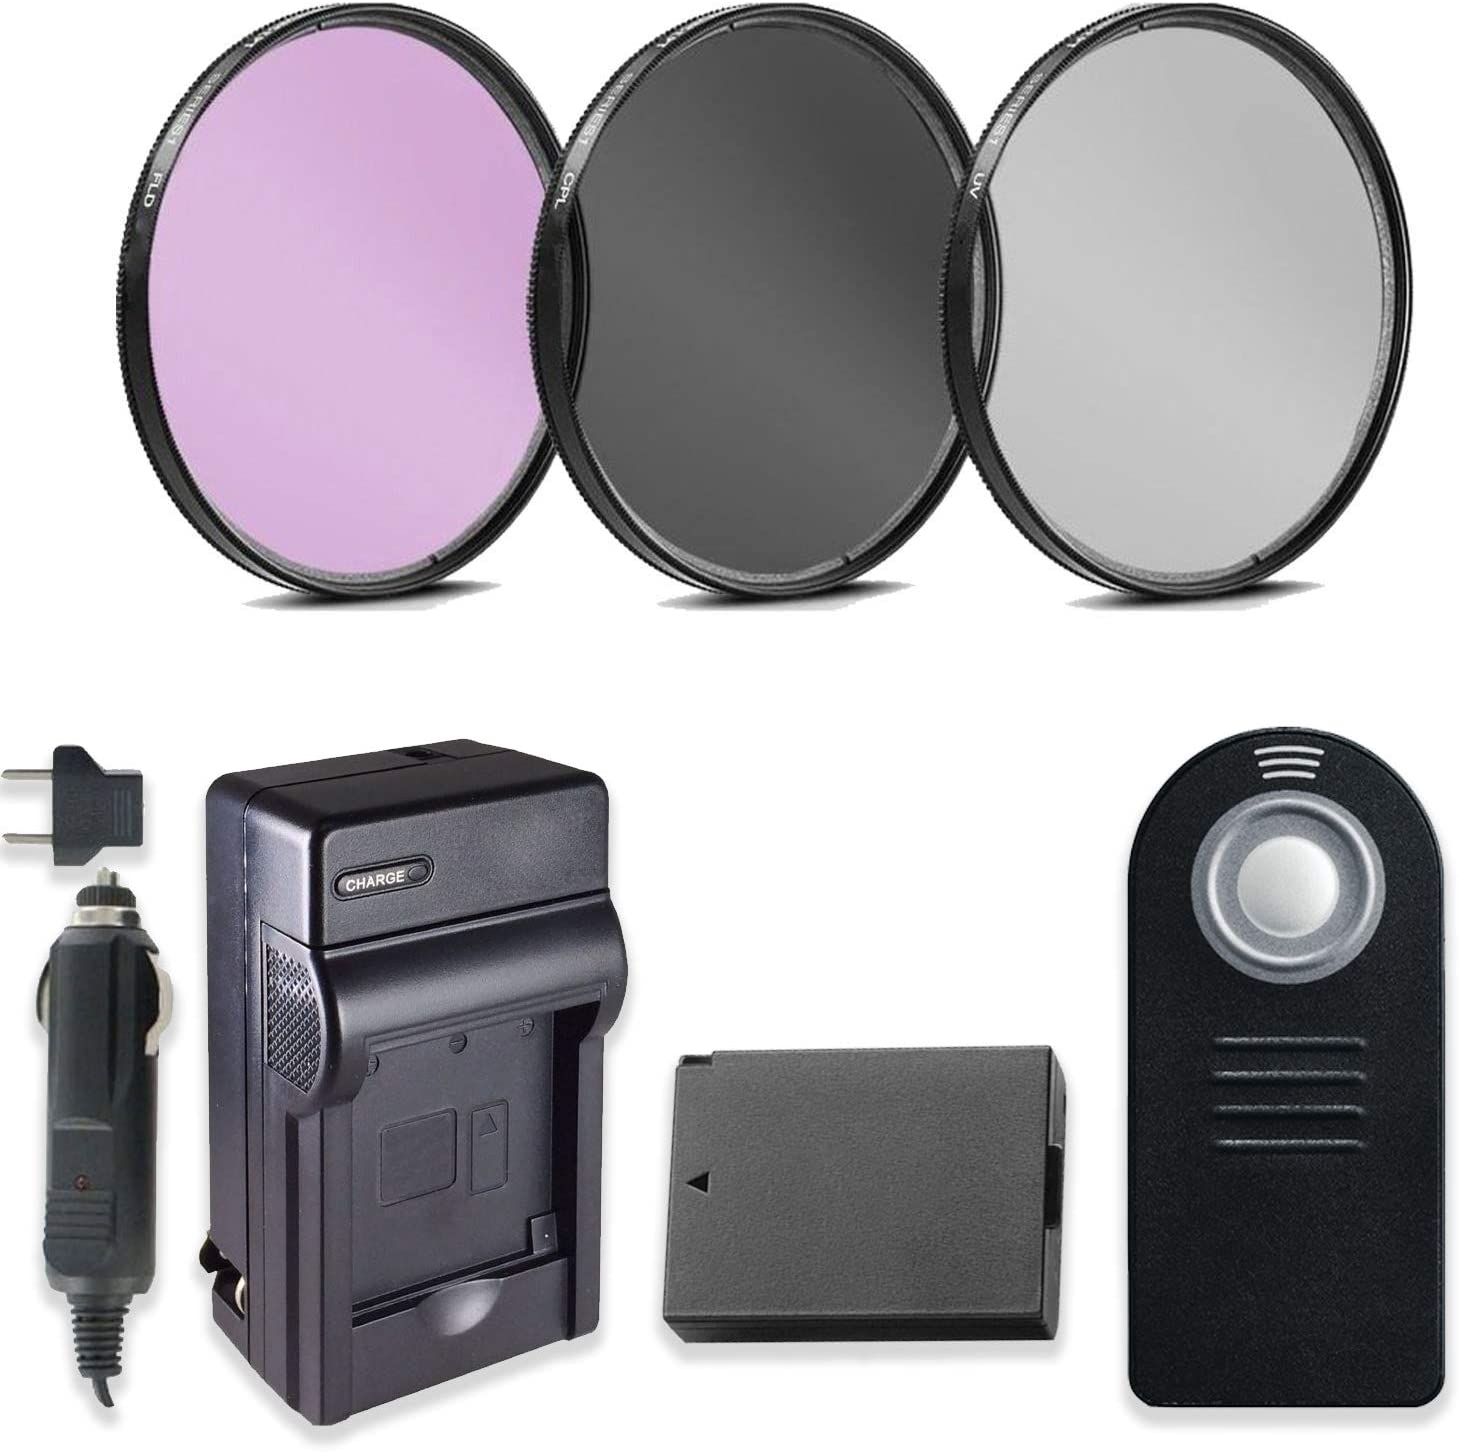 T7i /& EOS 77D DSLRs 58mm 3 Piece Filter Kit with High Def UV FLD /& CPL Filters Replacement LP-E17 Battery /& Travel Charger for Canon EOS Rebel T6i Wireless Shutter Release Remote